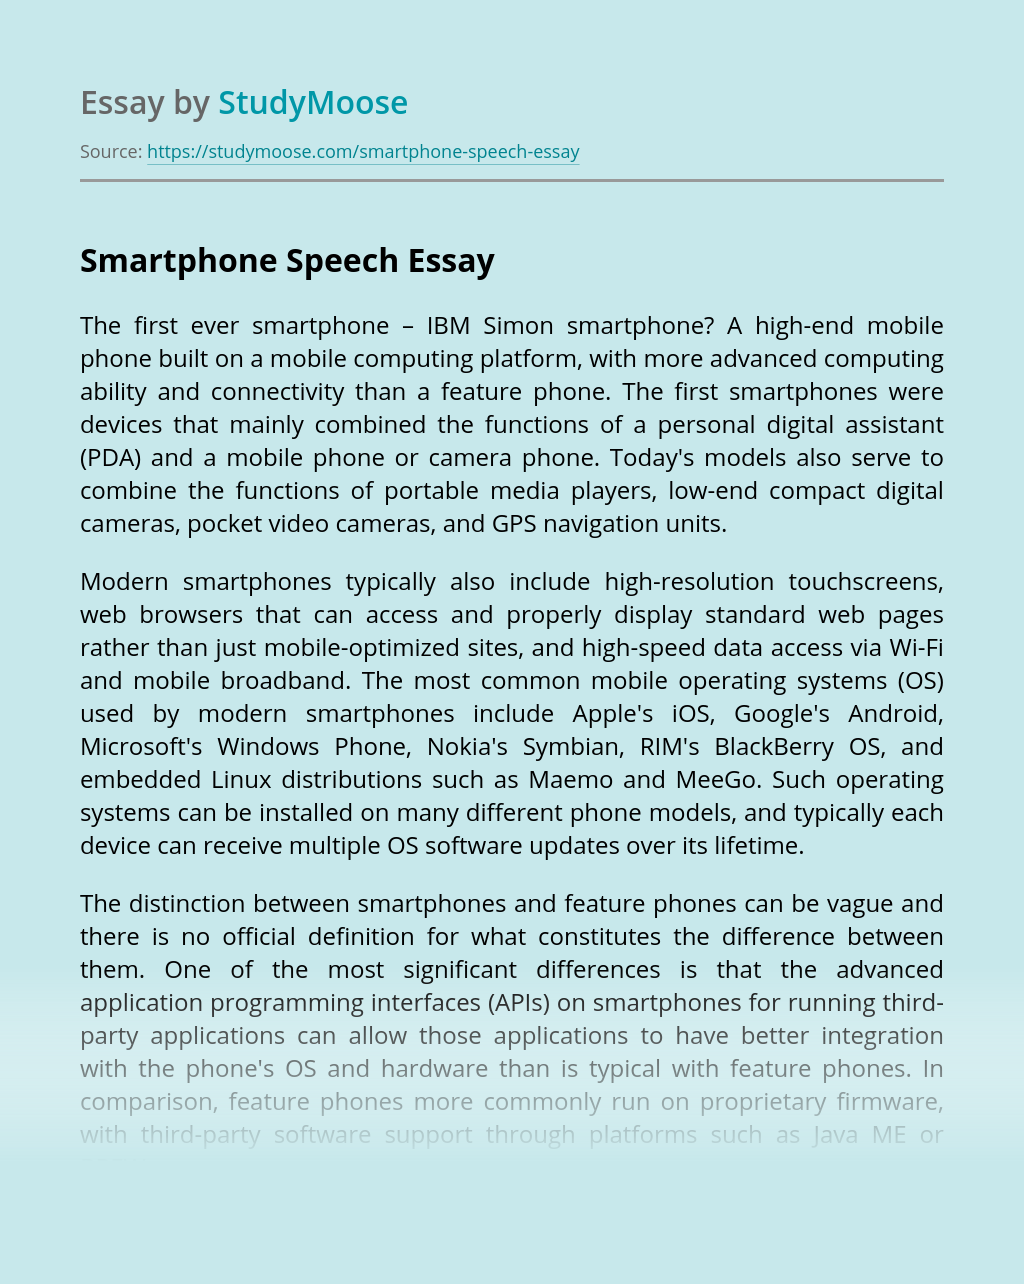 Smartphone Speech